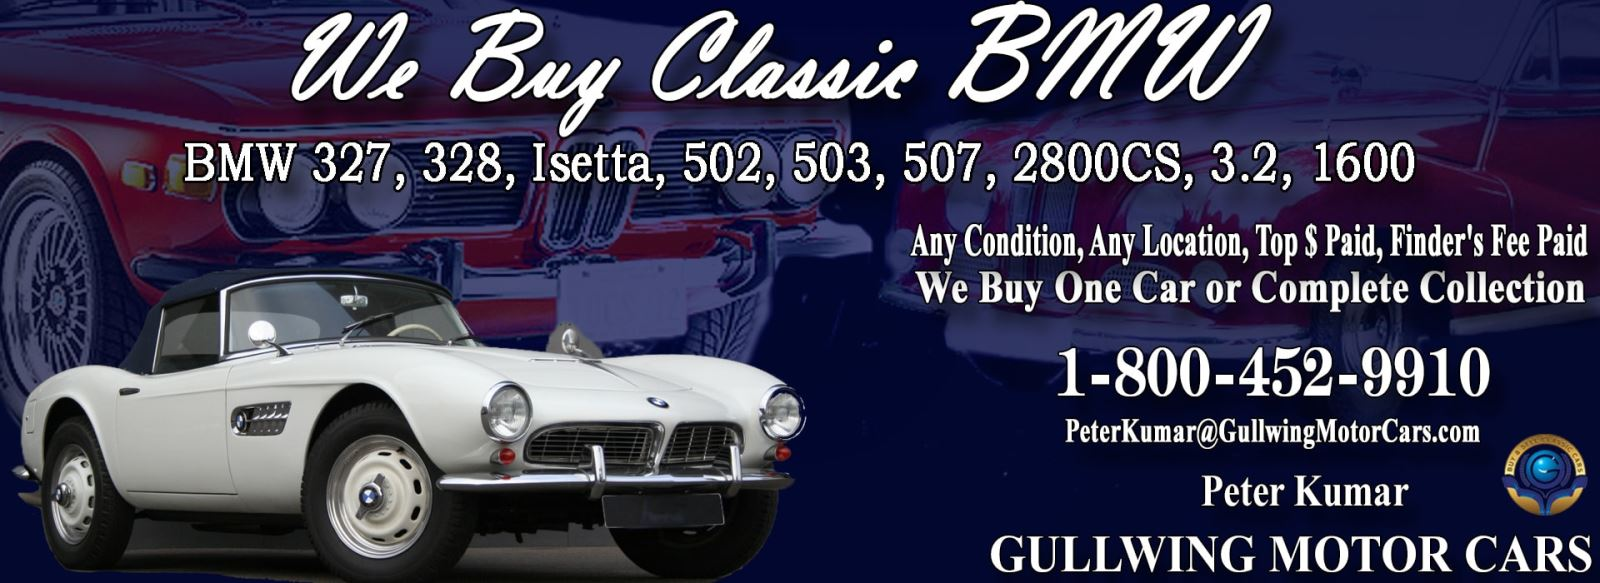 Classic BMW 2000 CS for sale, we buy vintage BMW 2000CS. Call Peter Kumar. Gullwing Motor